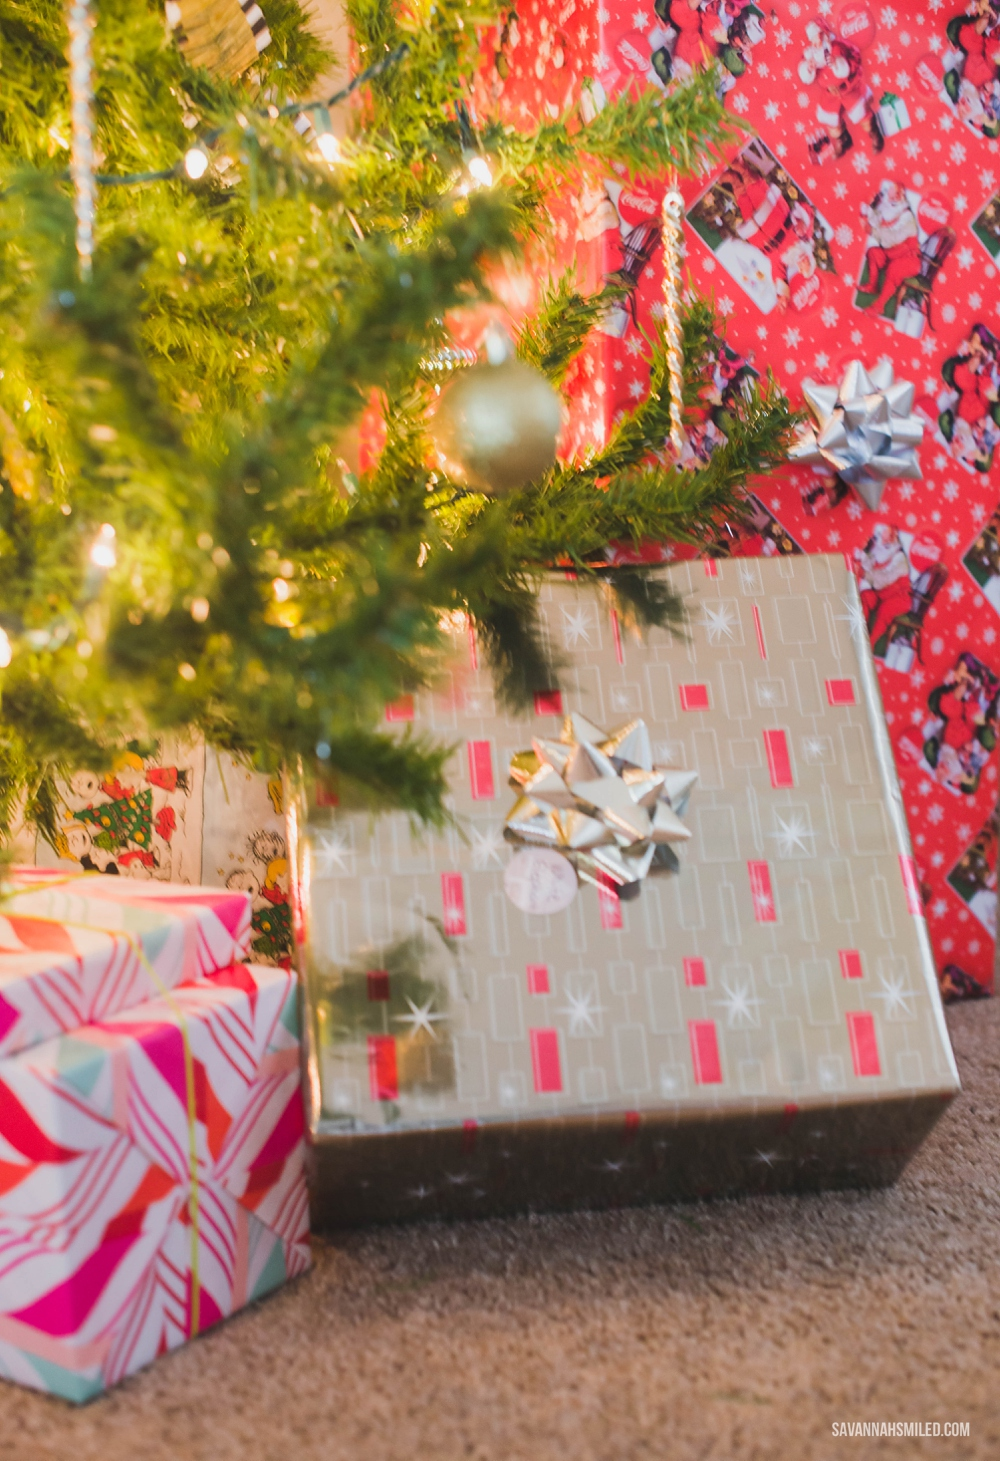 mix-up-christmas-gift-wrap-colors-under-tree-5.jpg